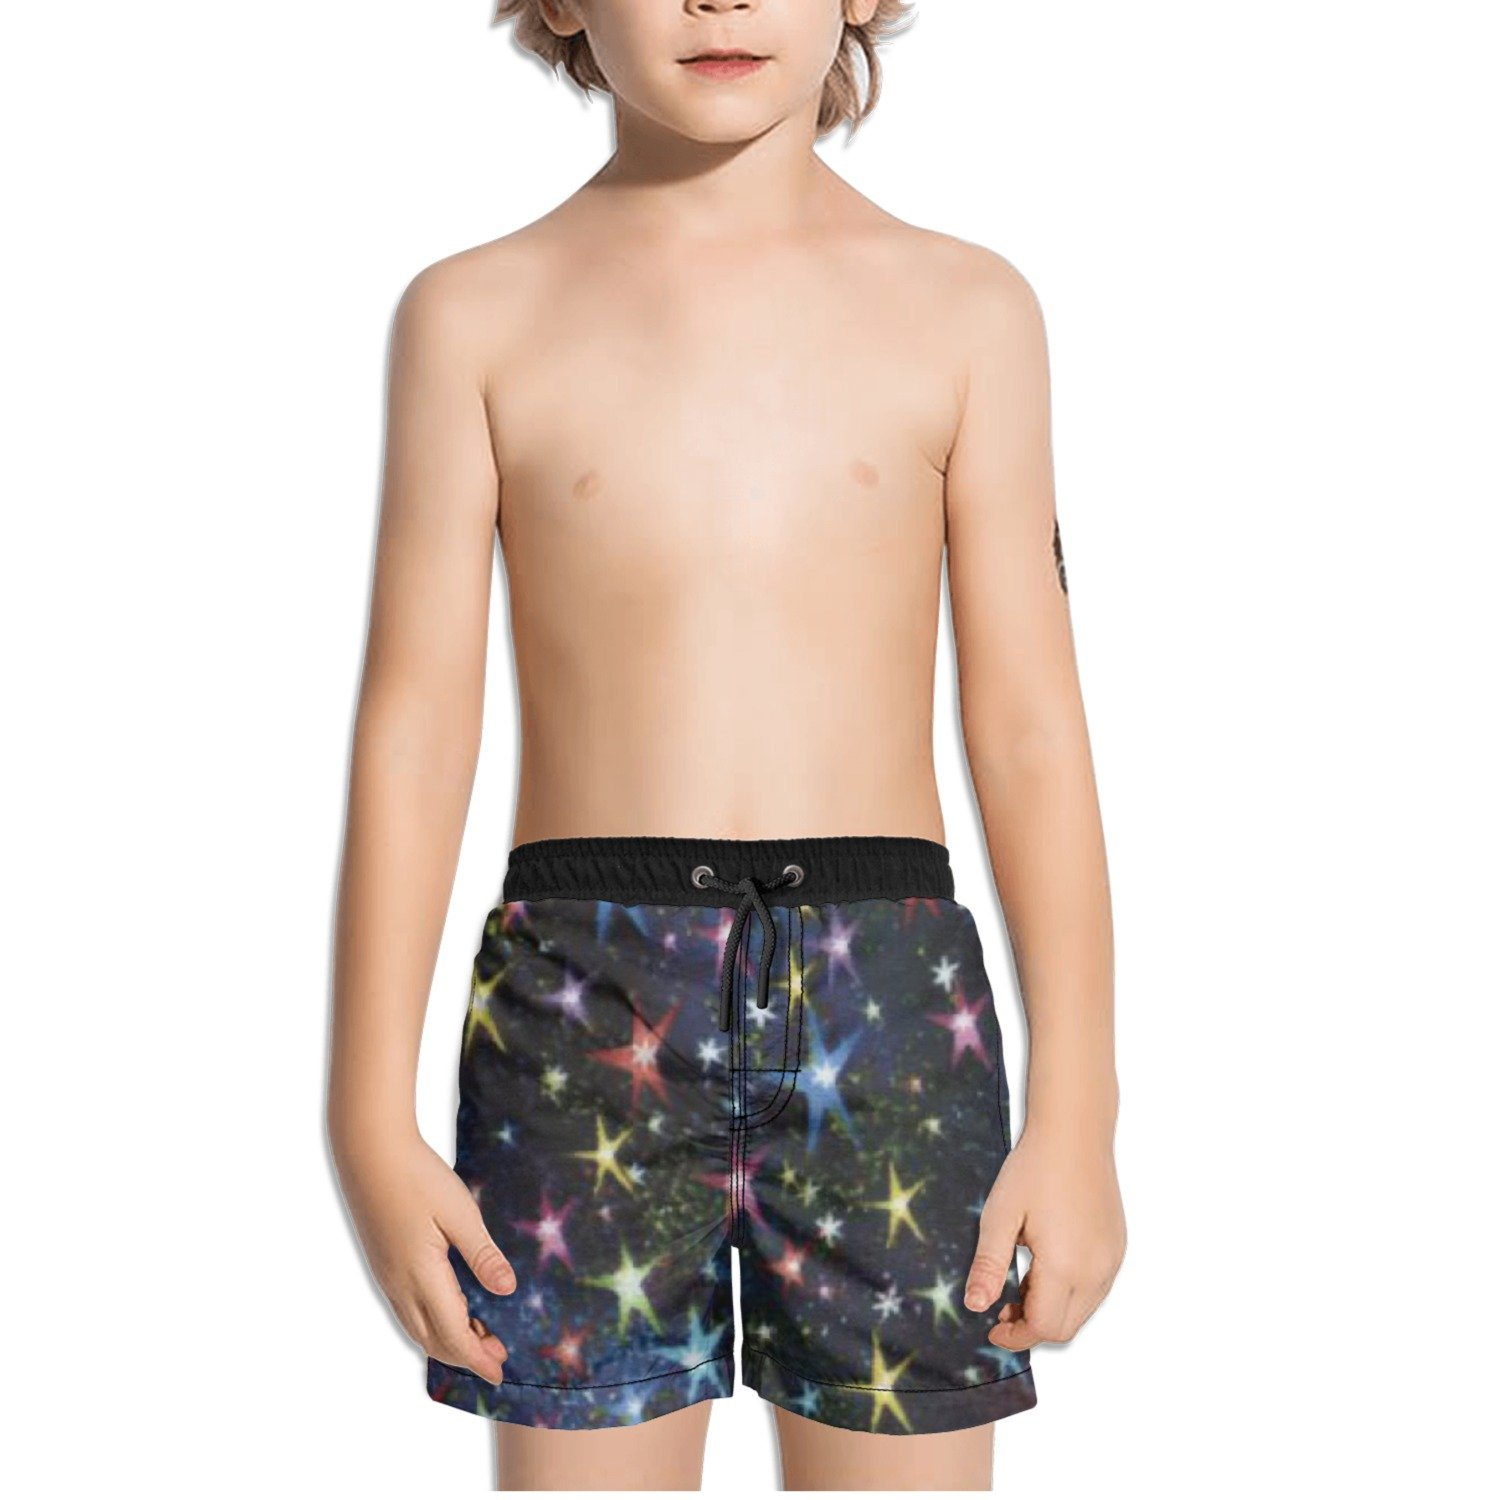 Ouxioaz Boys Swim Trunk Out of This World Twinkling Stars Star Beach Board Shorts